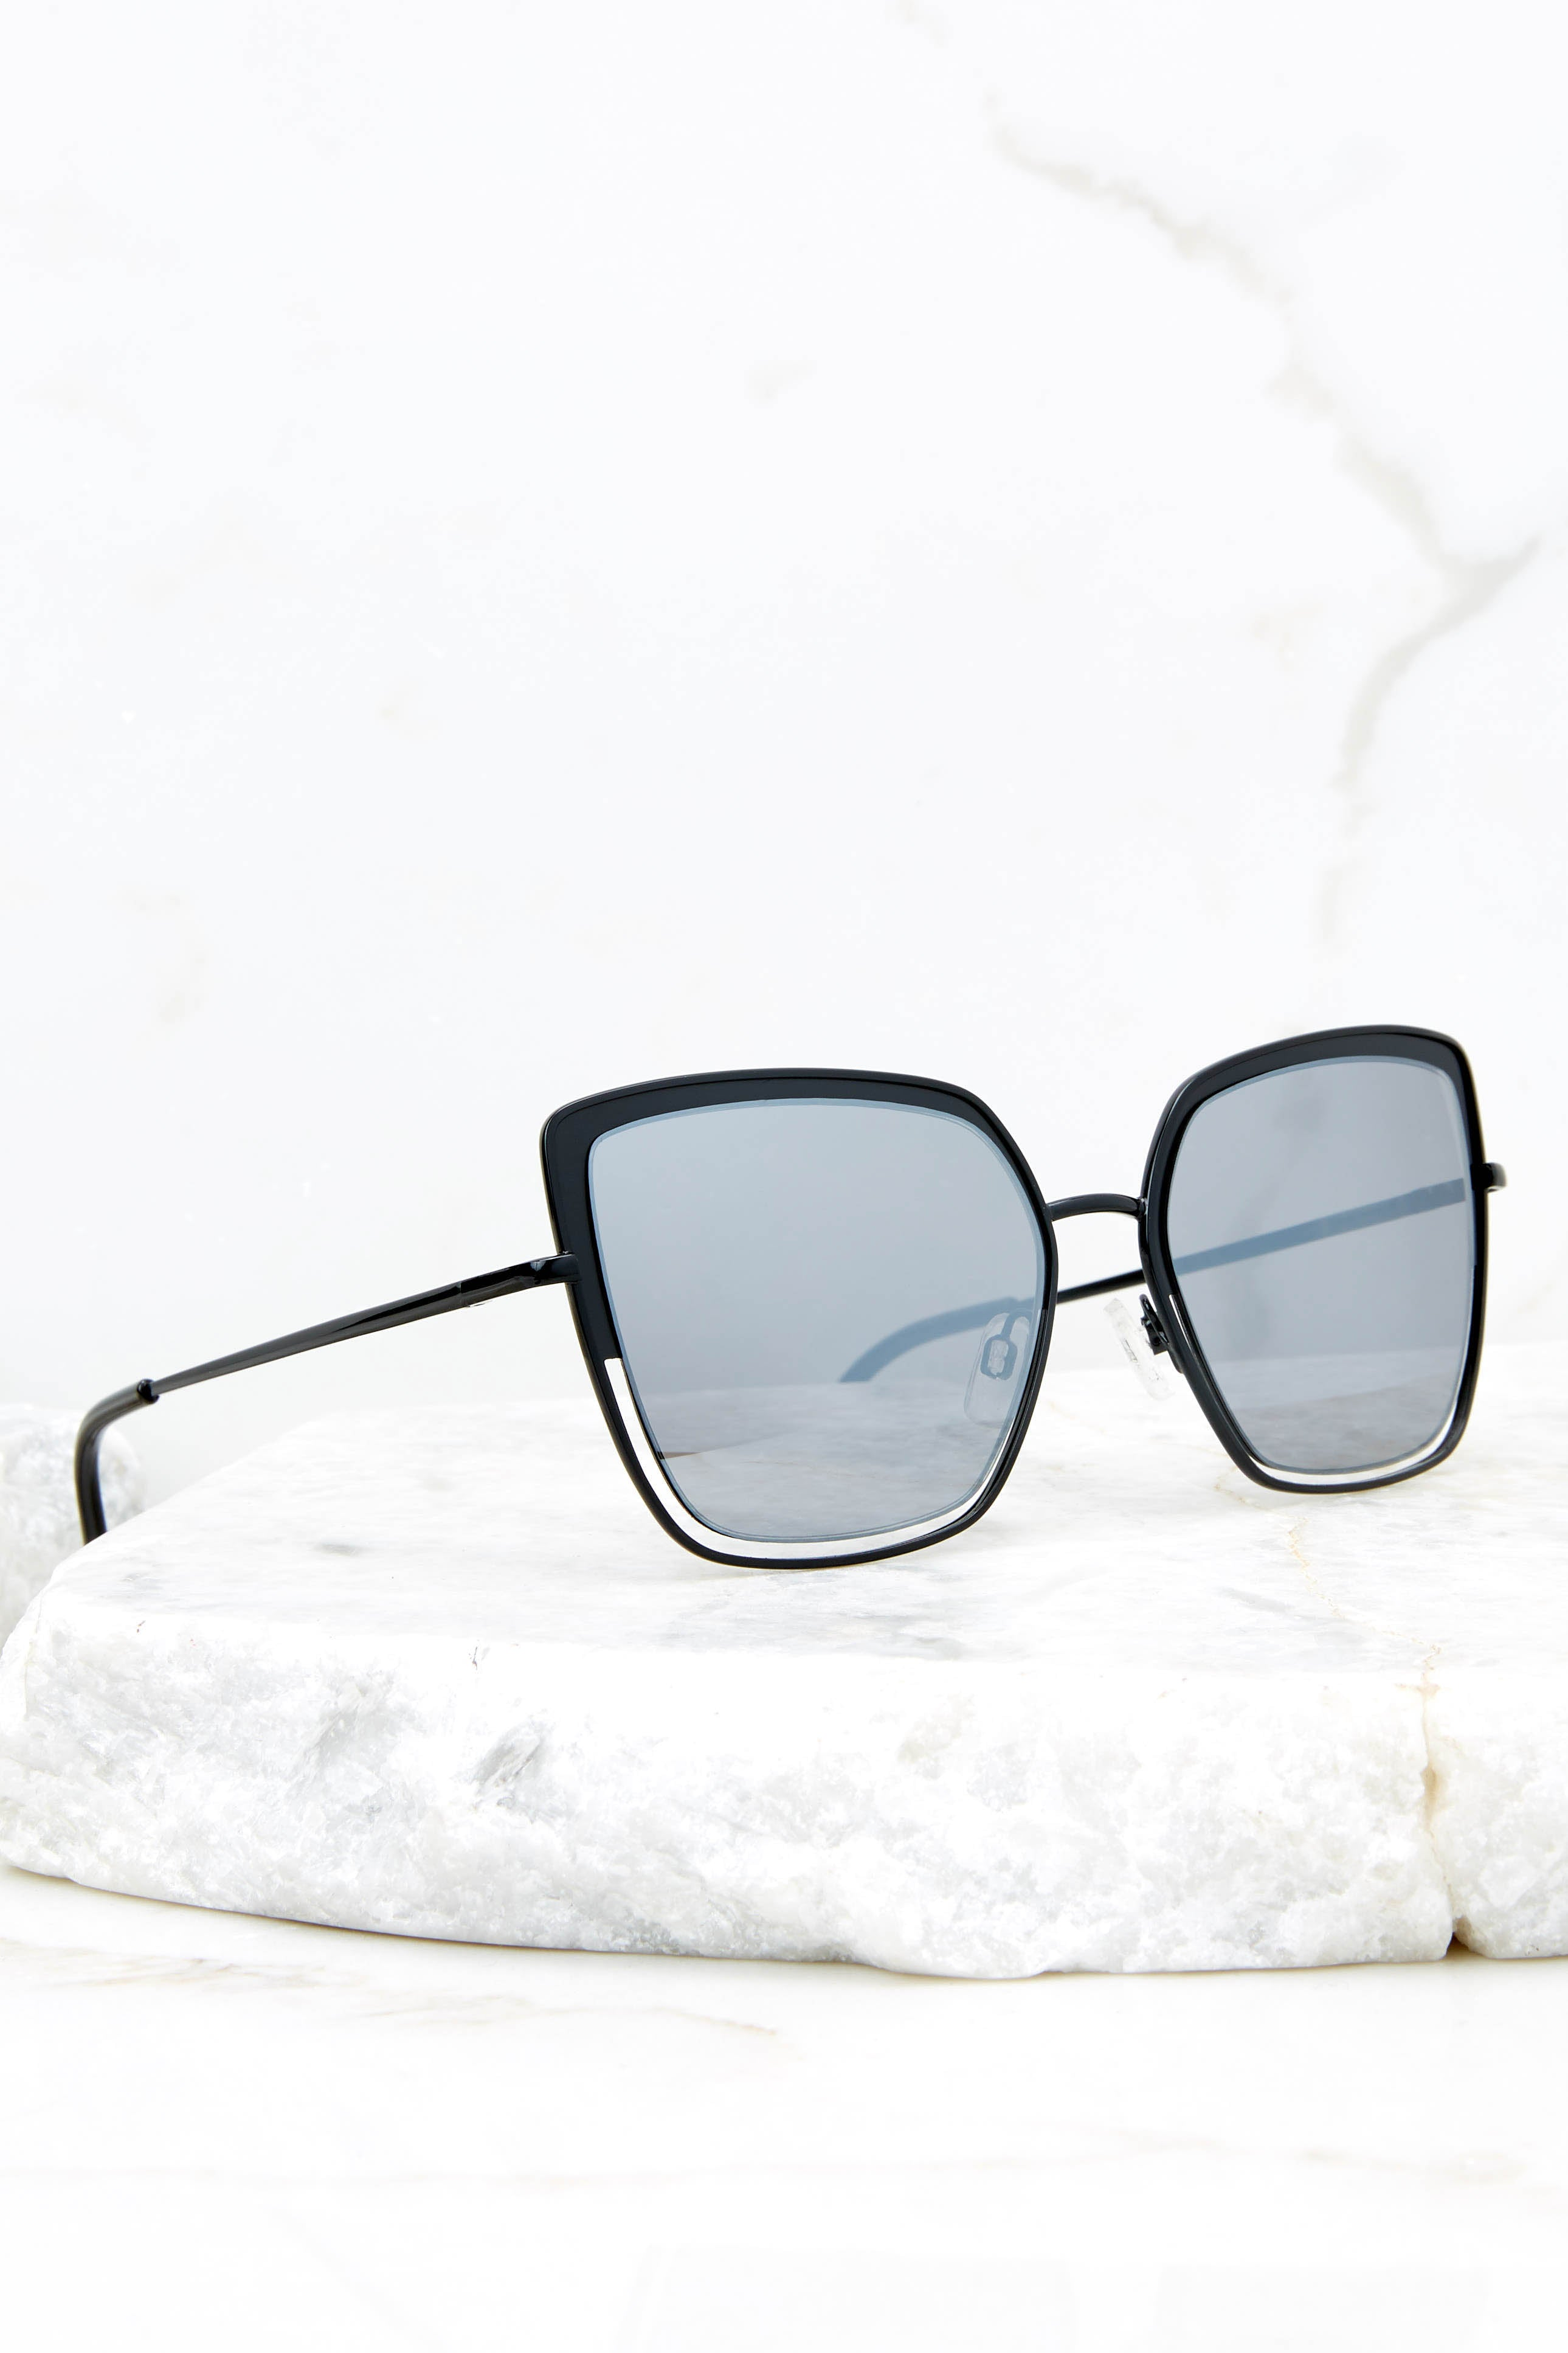 2 Way To Vacay Black Smoke Black Sunglasses at reddressboutique.com